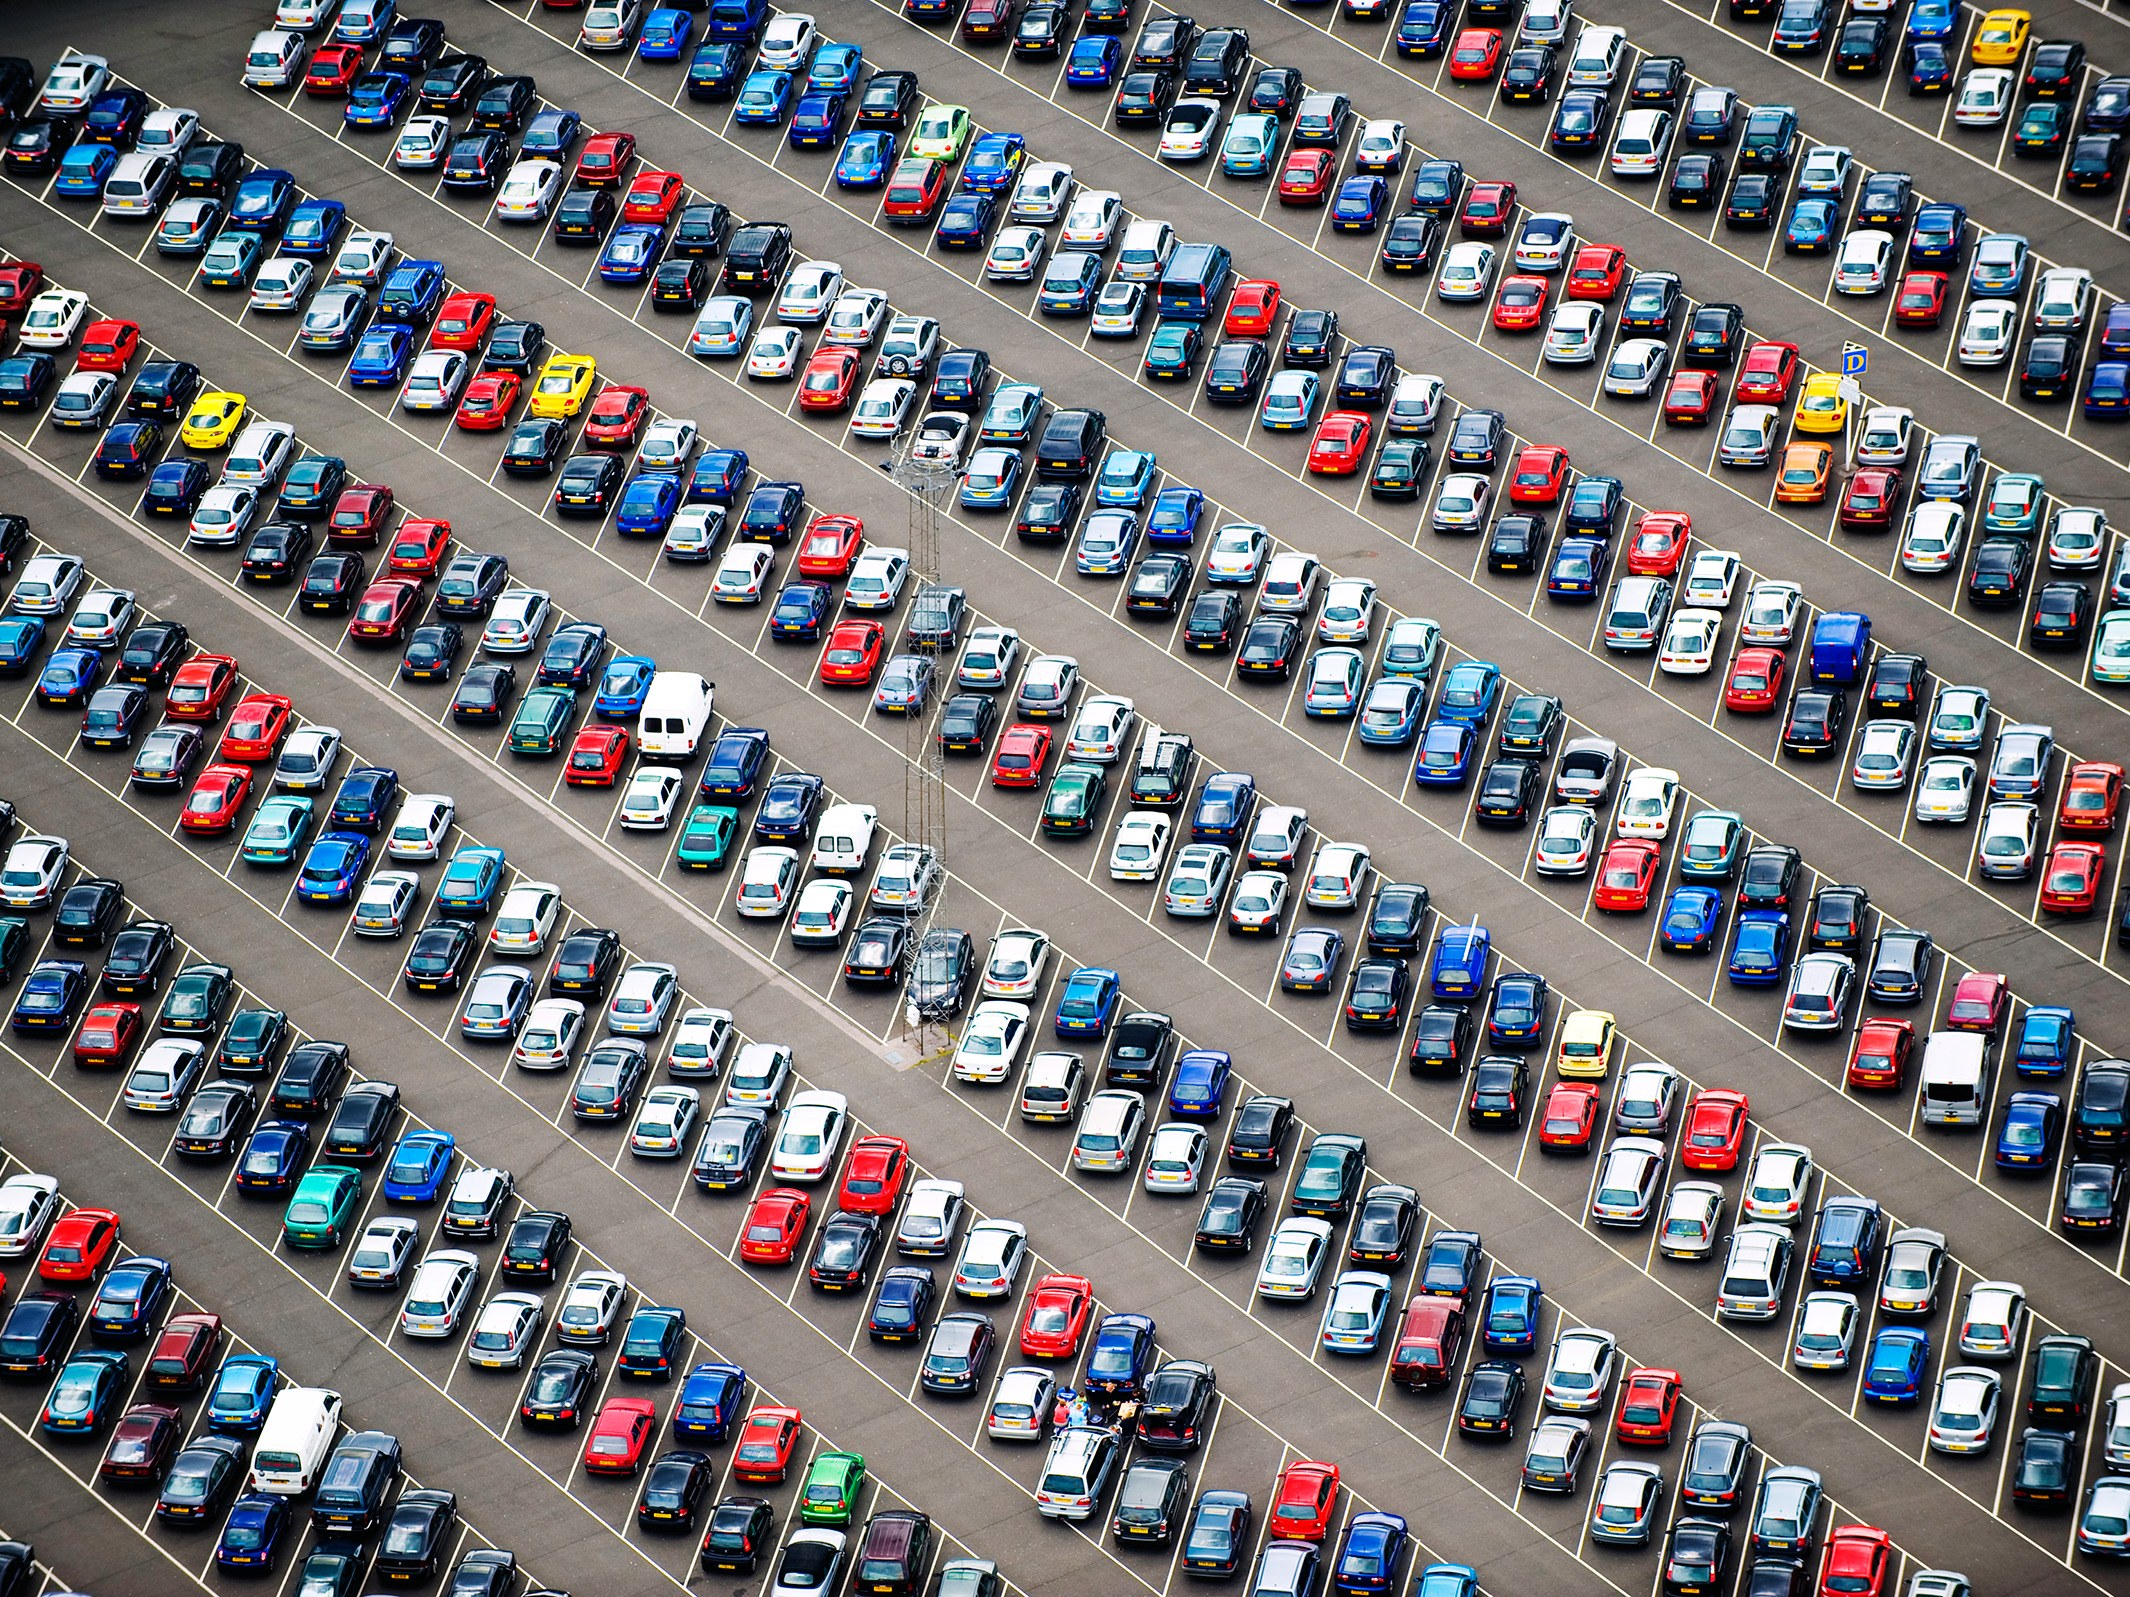 image of parking lot from above